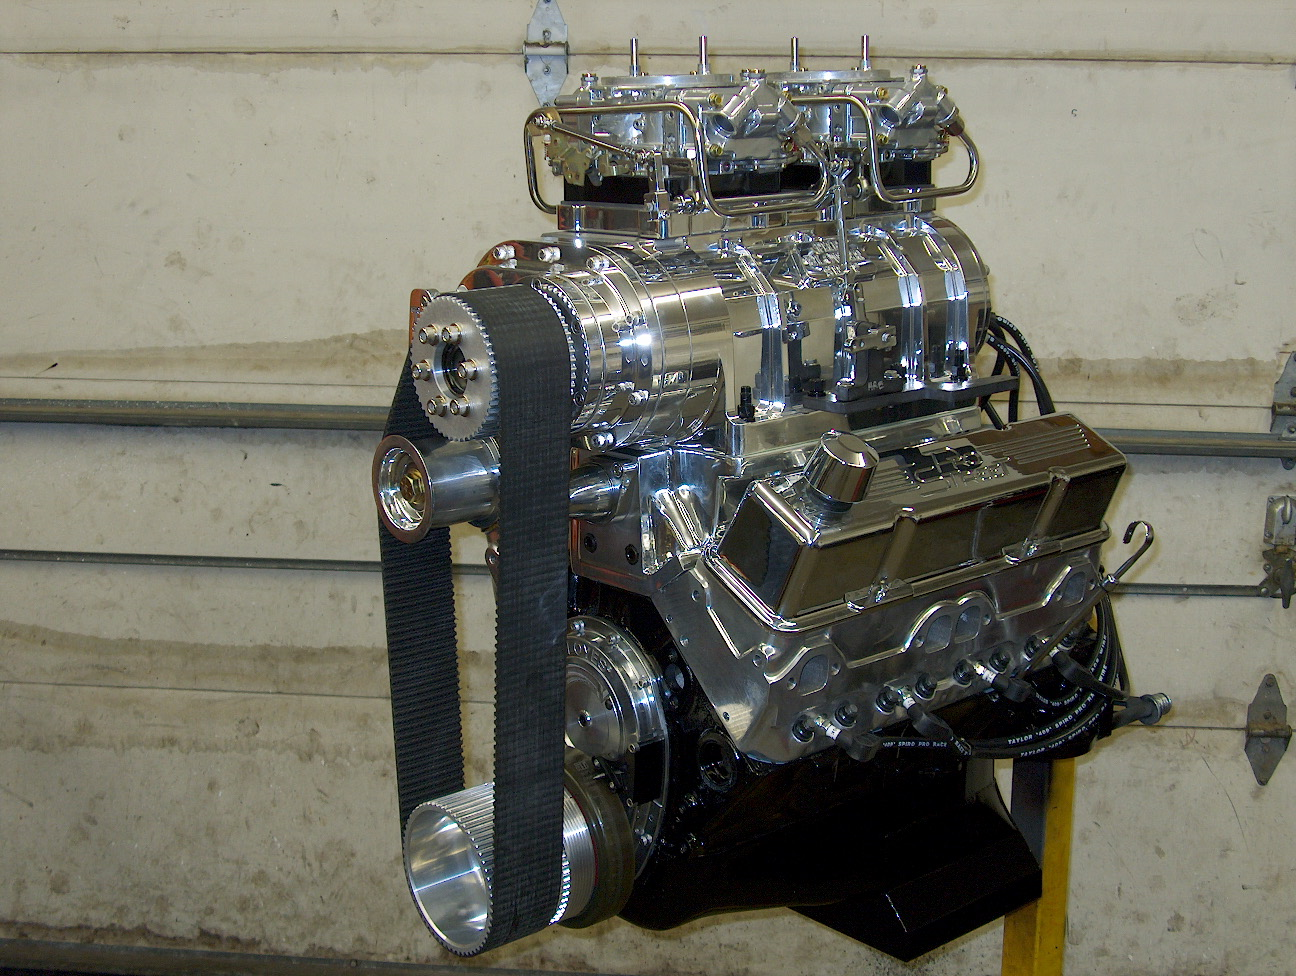 400 Small Block Chevy 750 HP Supercharged